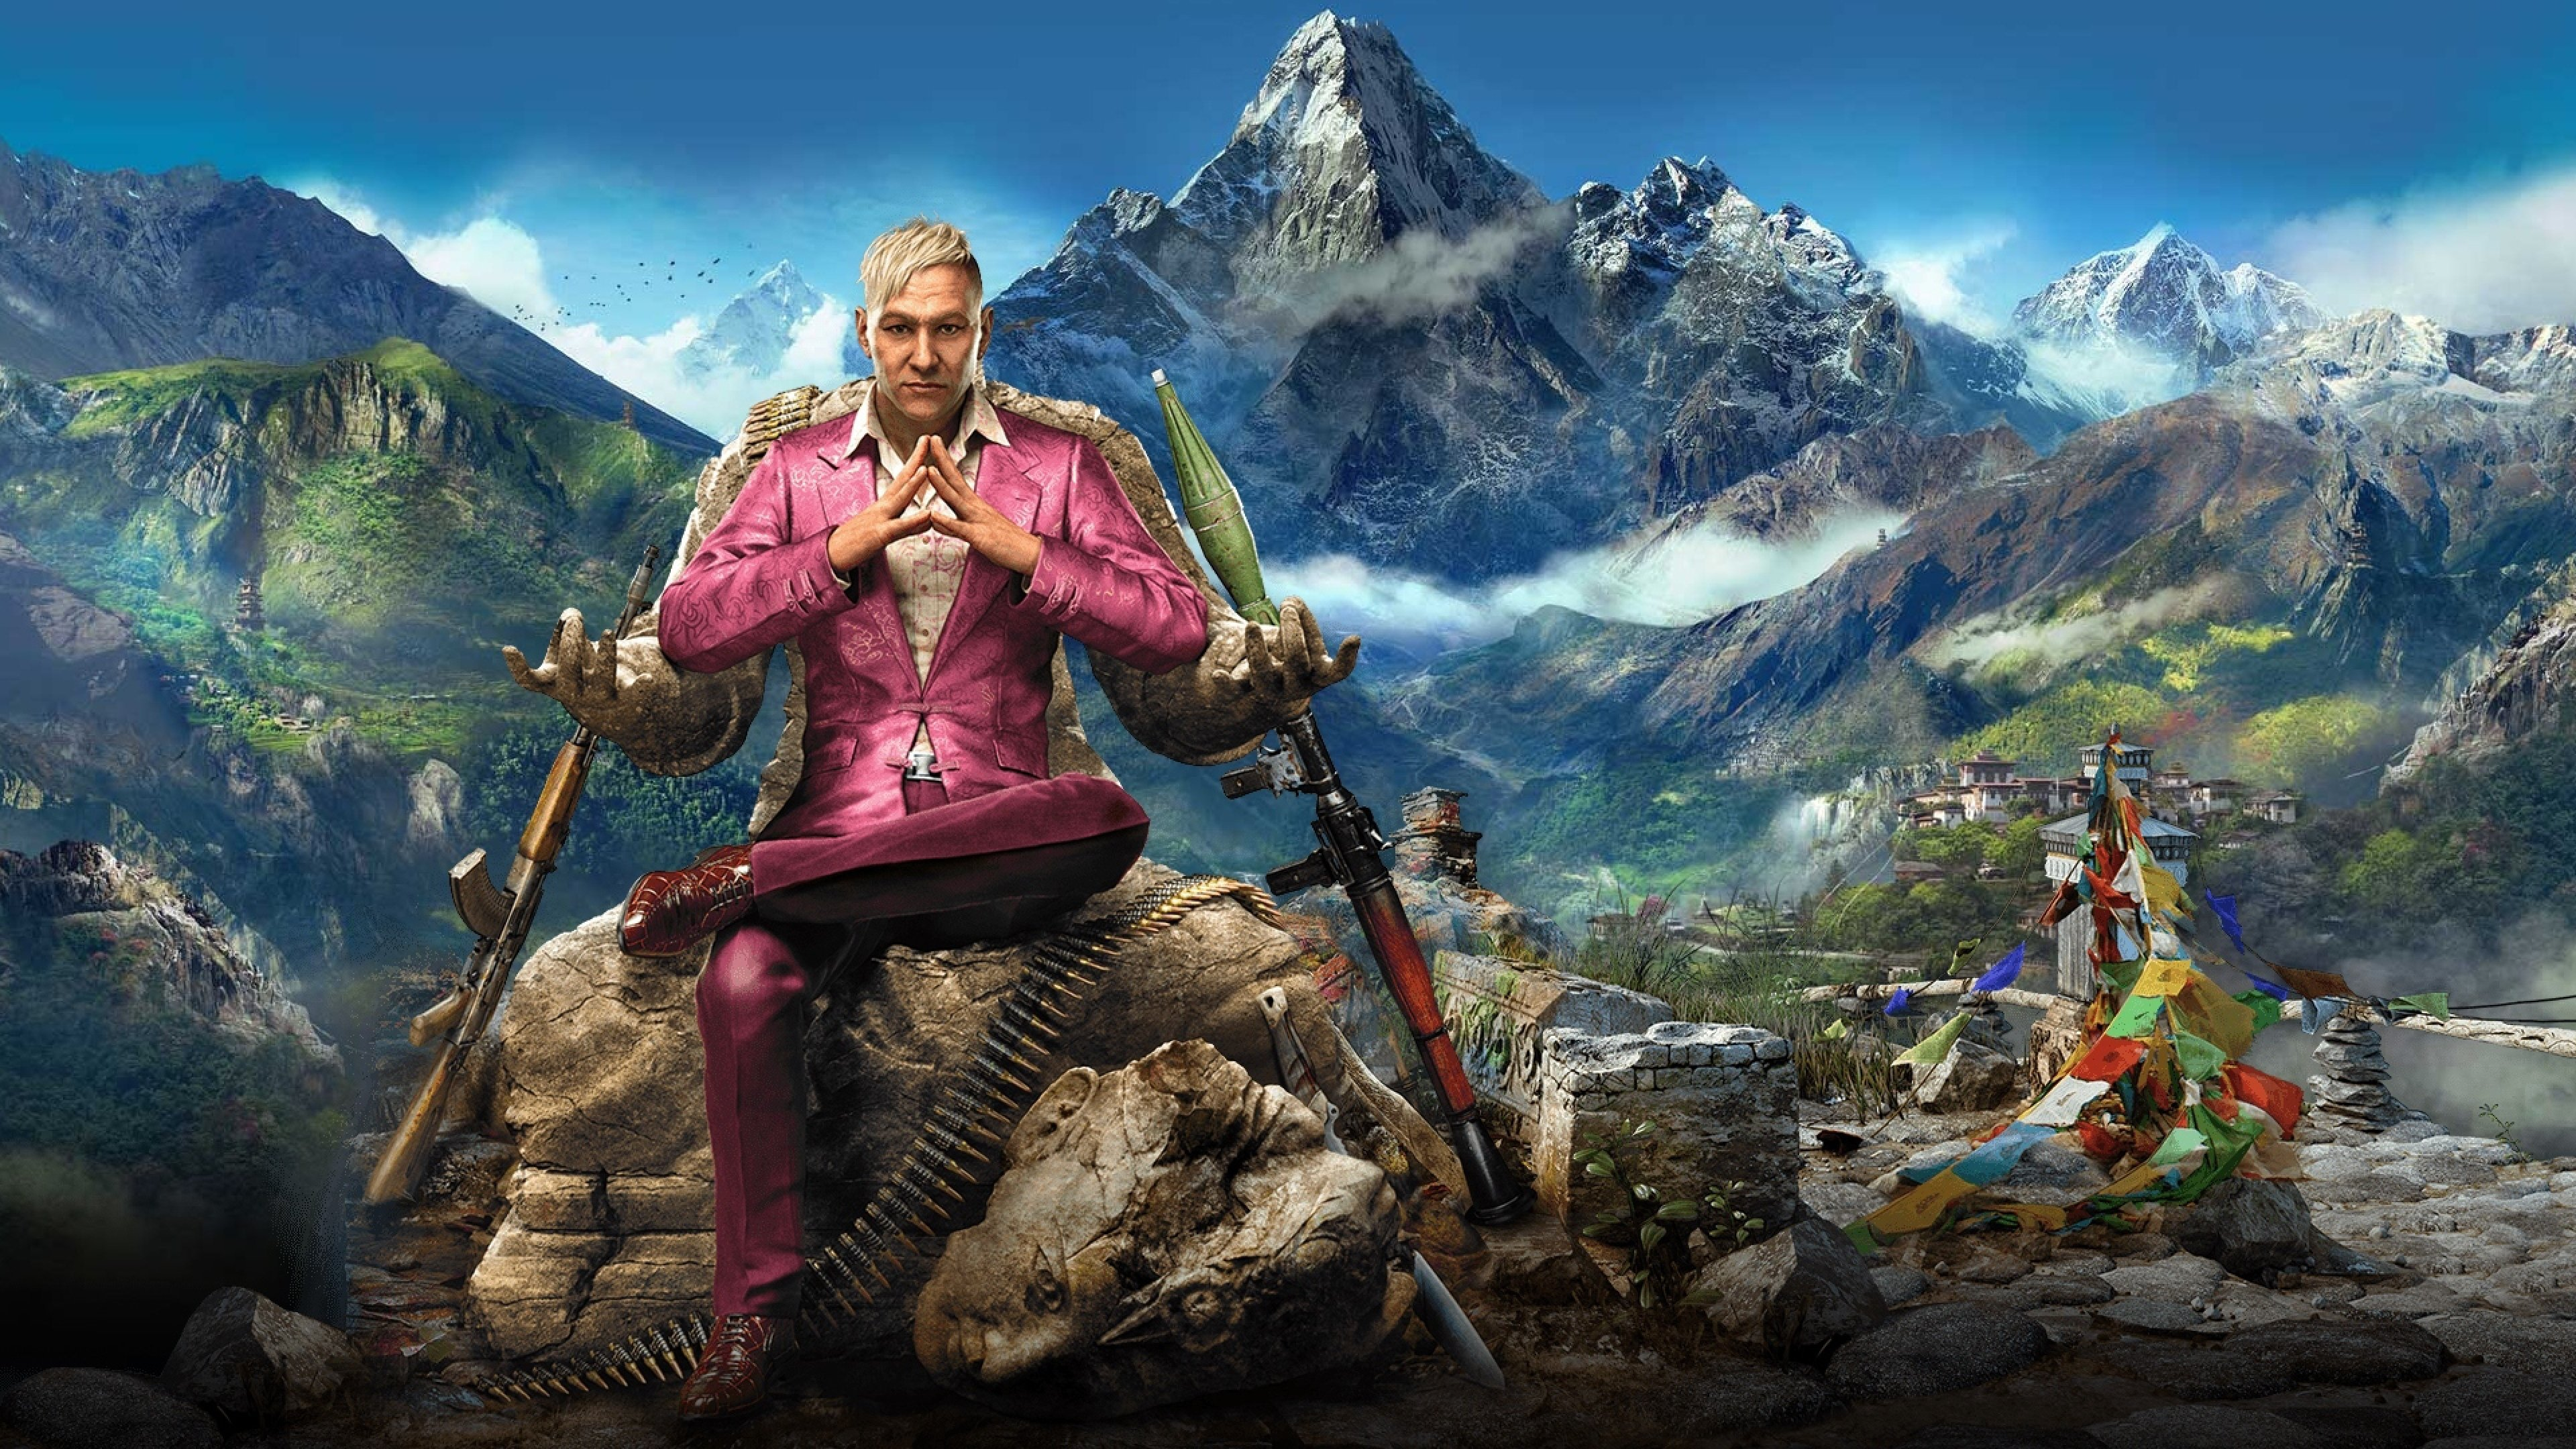 47 Far Cry 4 4k Wallpaper On Wallpapersafari